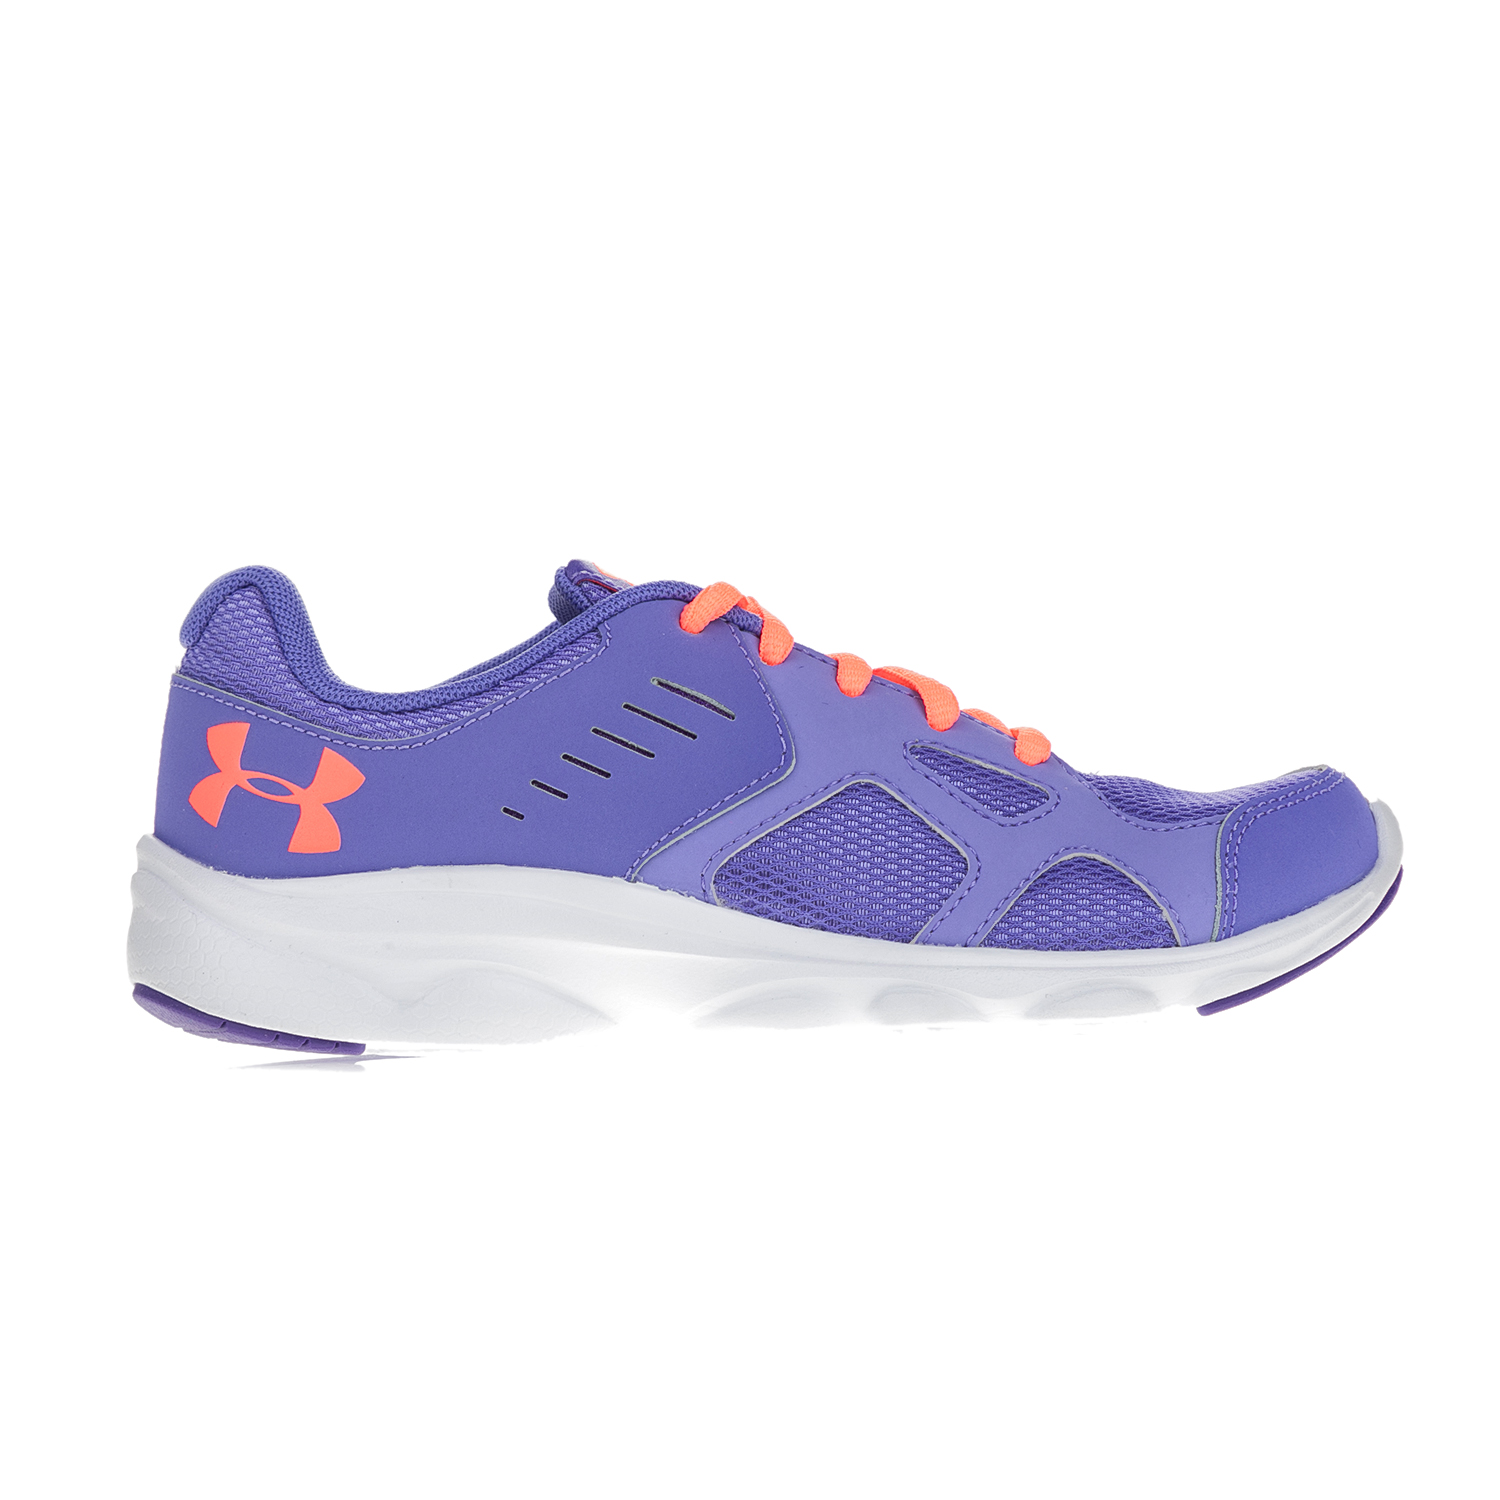 UNDER ARMOUR – Κοριτσίστικα αθλητικά παπούτσια UNDER ARMOUR GGS PACE RN μοβ